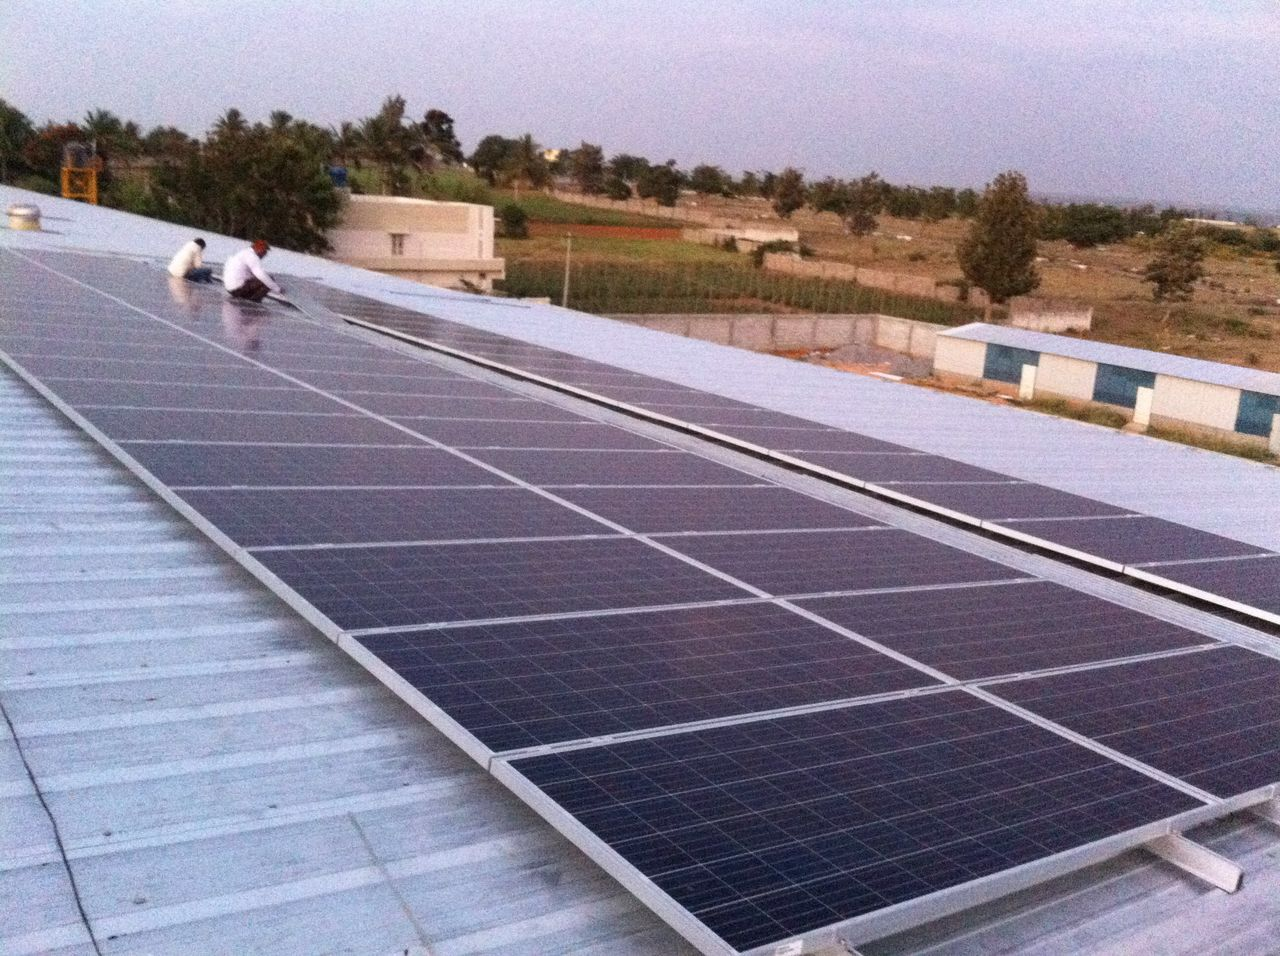 Sunsure Commissions Latest Plant - 2000 kWp Rooftop Solar for Merino Panel Products in Haryana